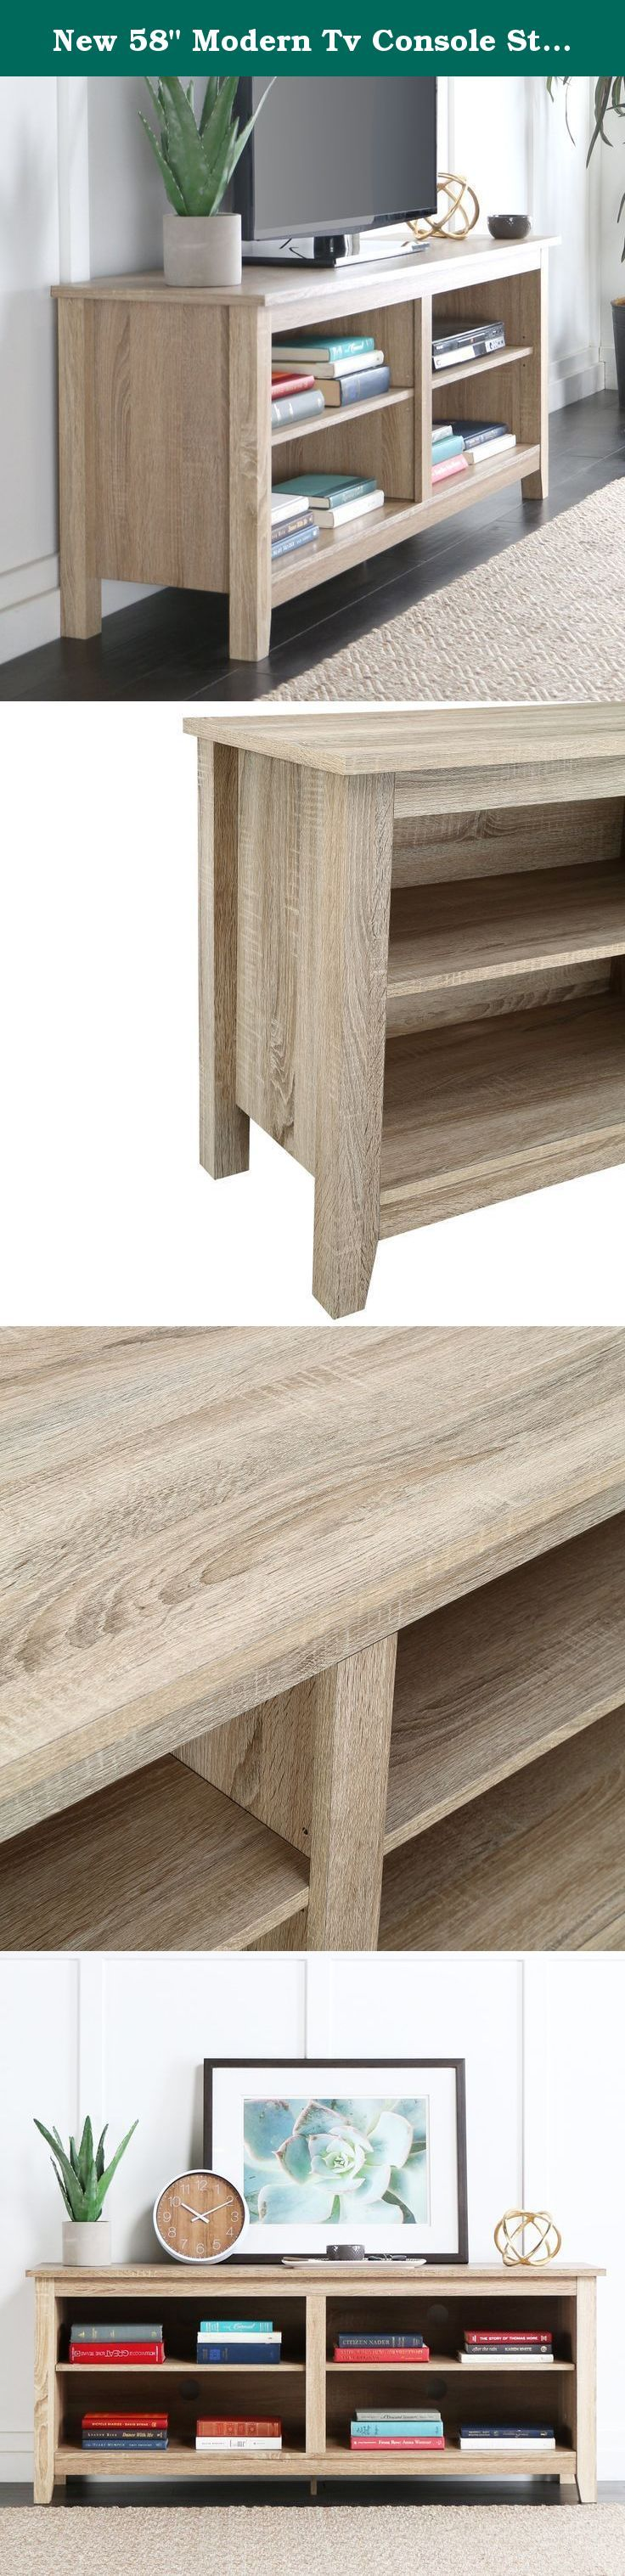 """New 58"""" Modern Tv Console Stand - Natural Finish. New 58"""" Modern Tv Console Stand - Natural Finish."""